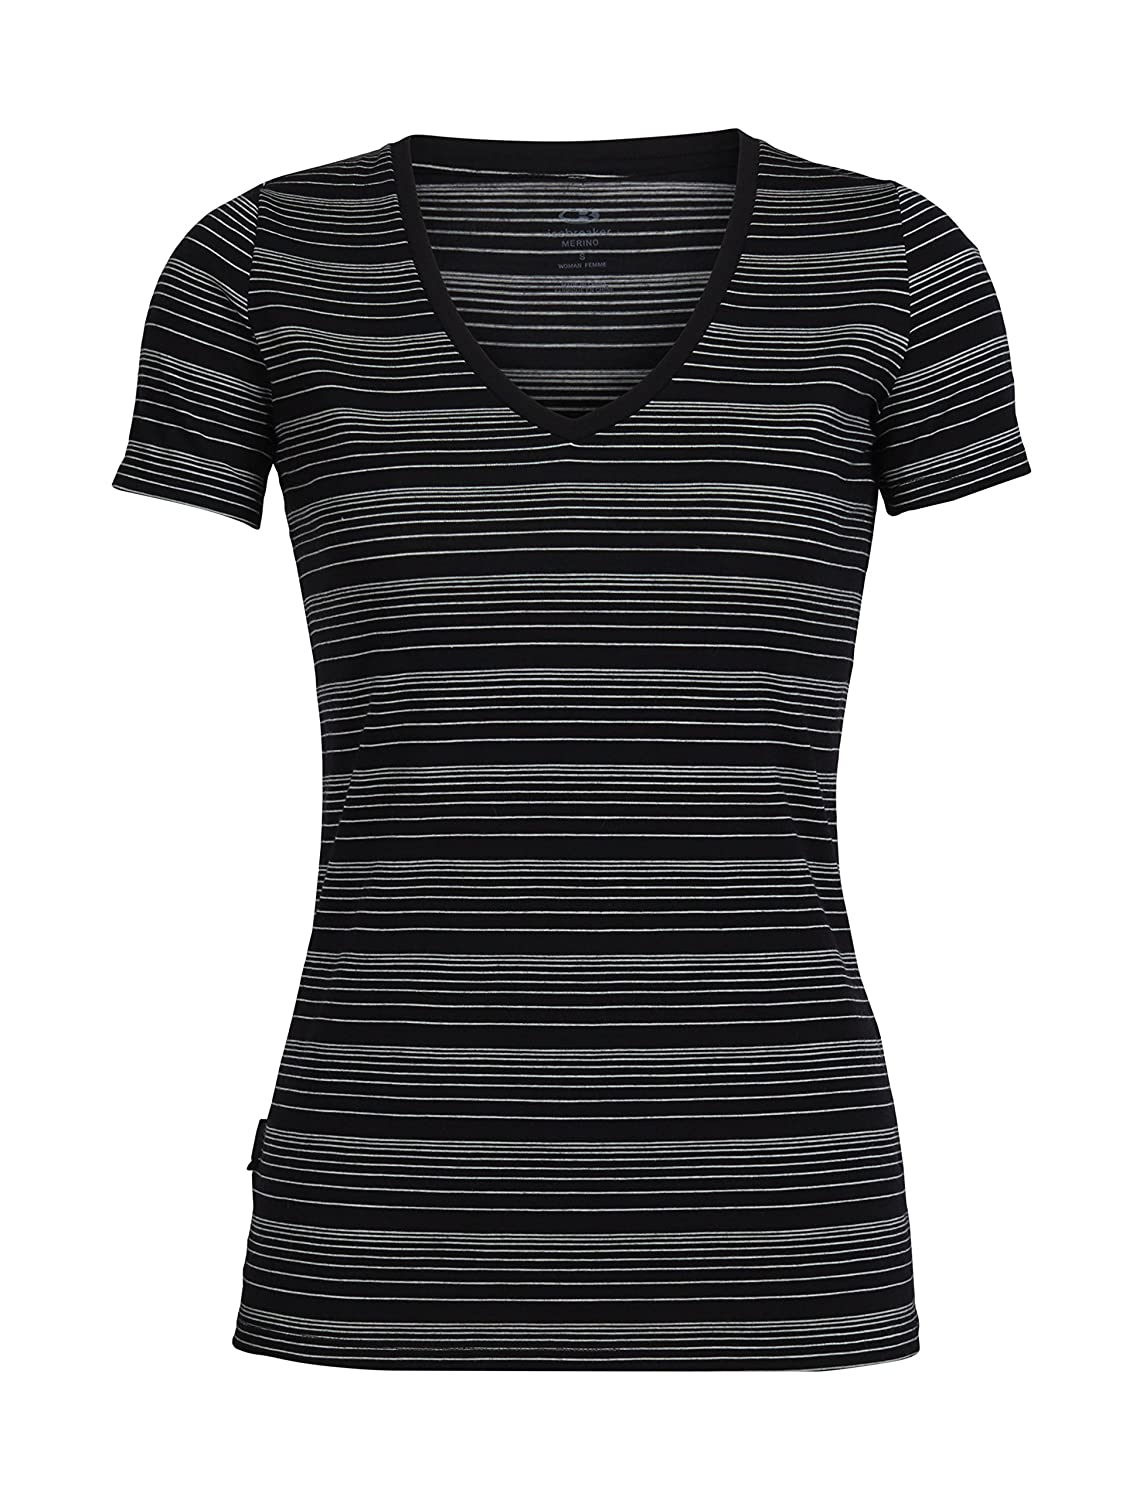 Black Snow Stripe Icebreaker Merino Women's Tech Lite Short Sleeve V Neck